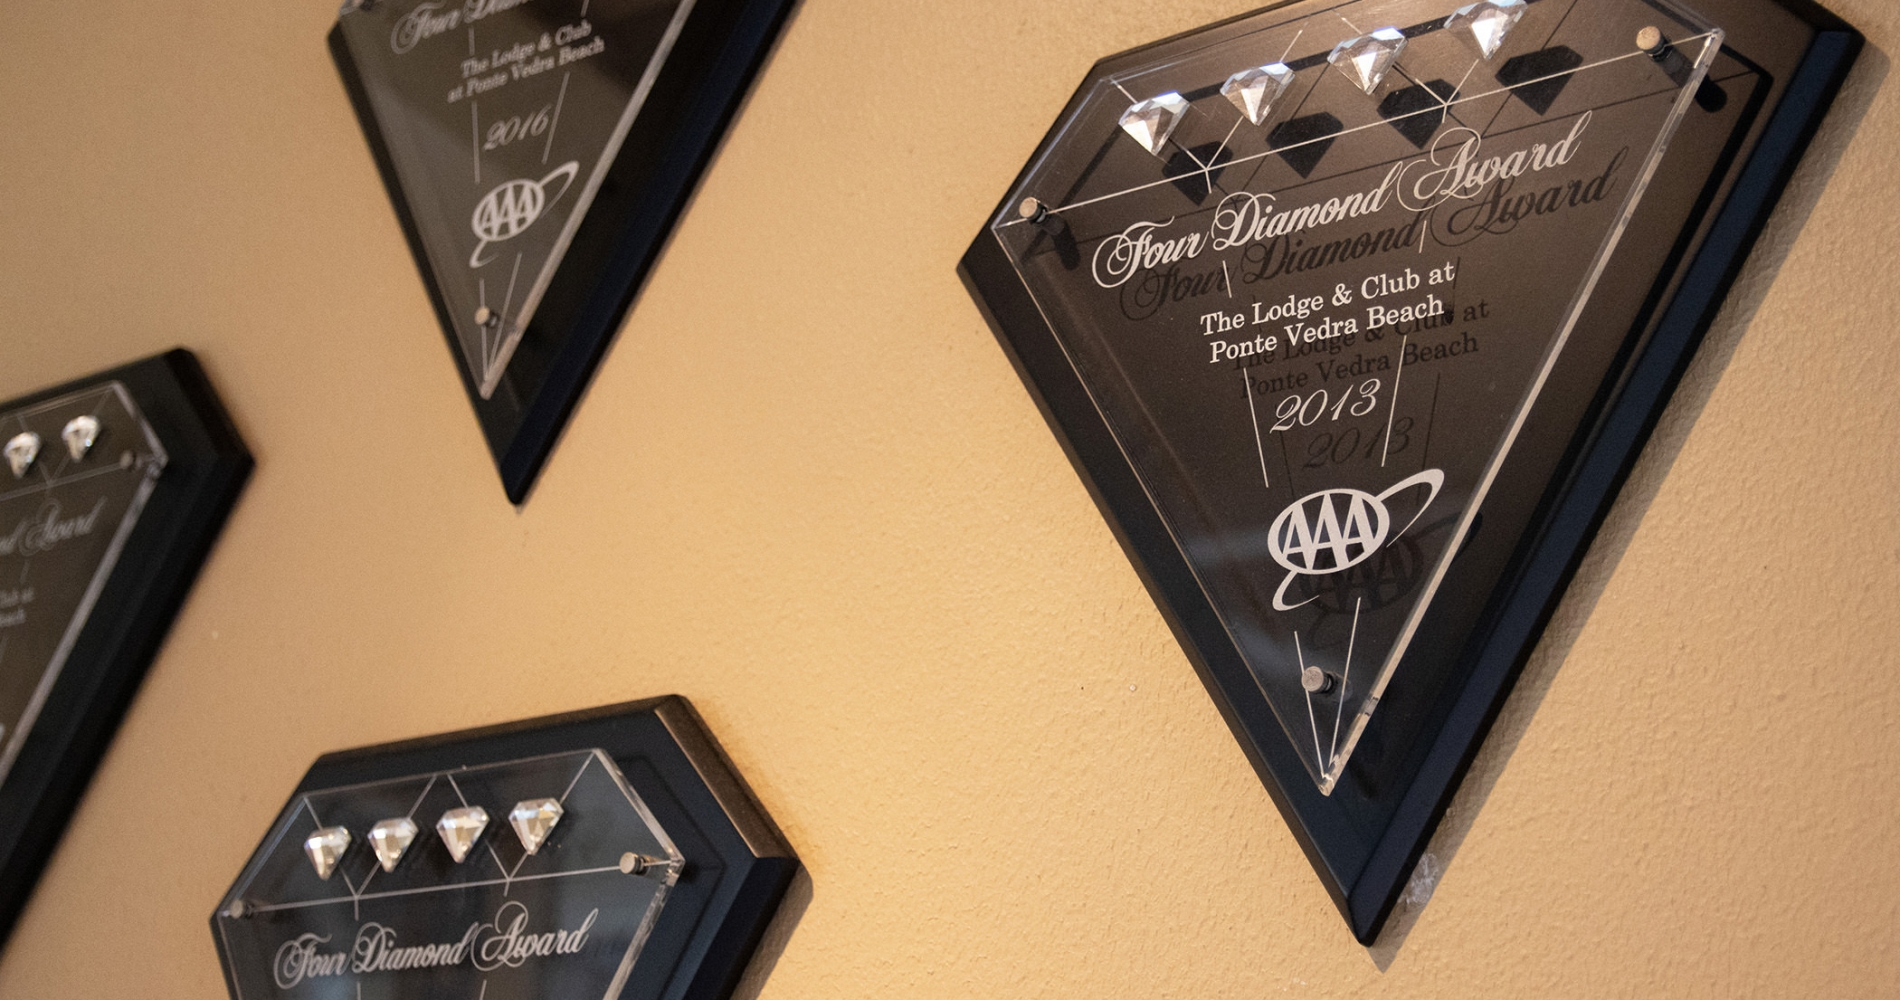 Four AAA Four Diamond awards hanging on a wall